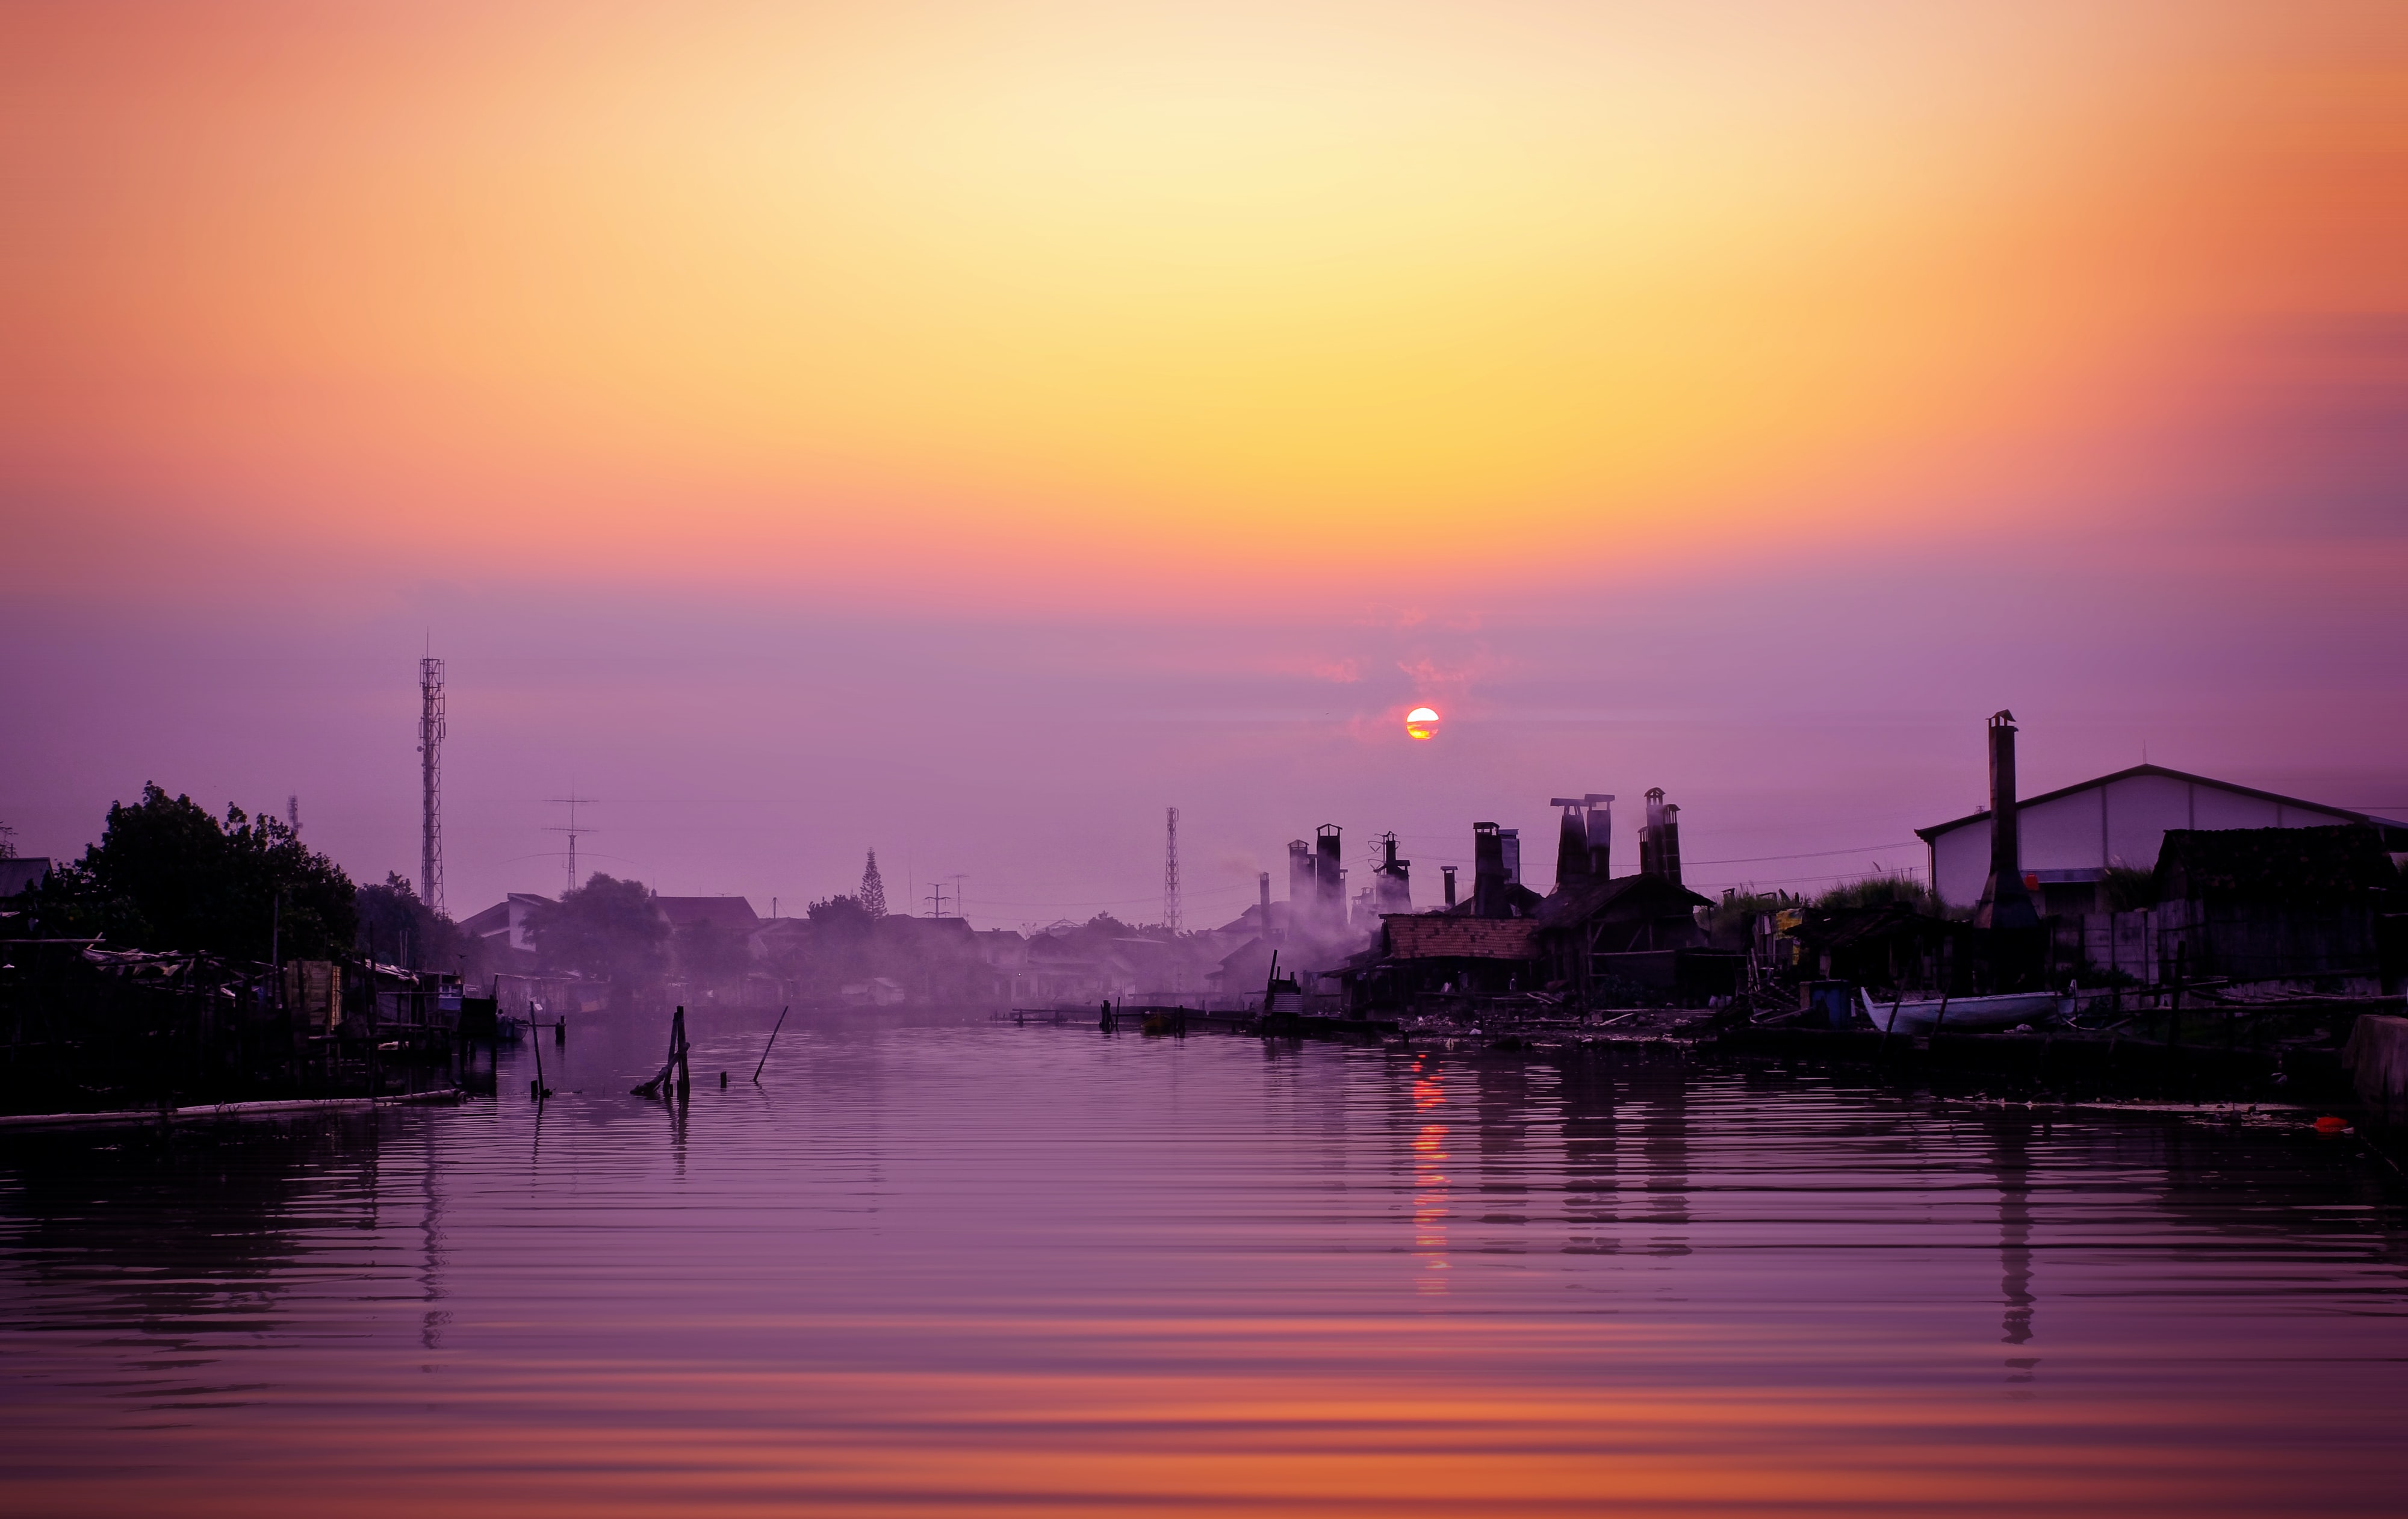 Buildings and boats on the rippling river, with a purple and orange sunset sky overhead, Semarang City